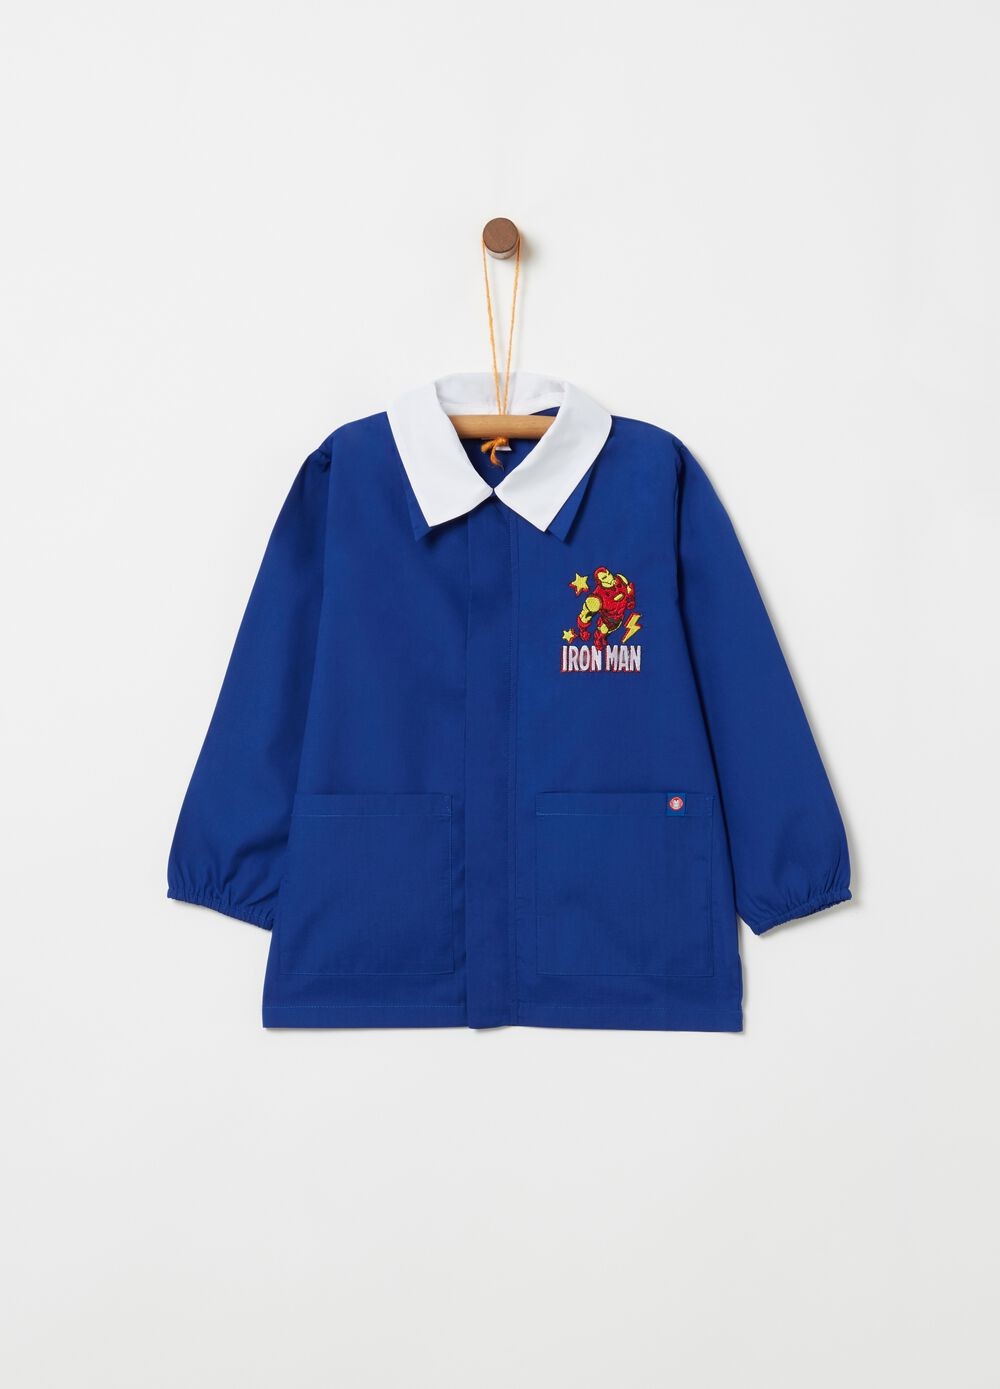 School smock with Iron Man embroidery and pockets